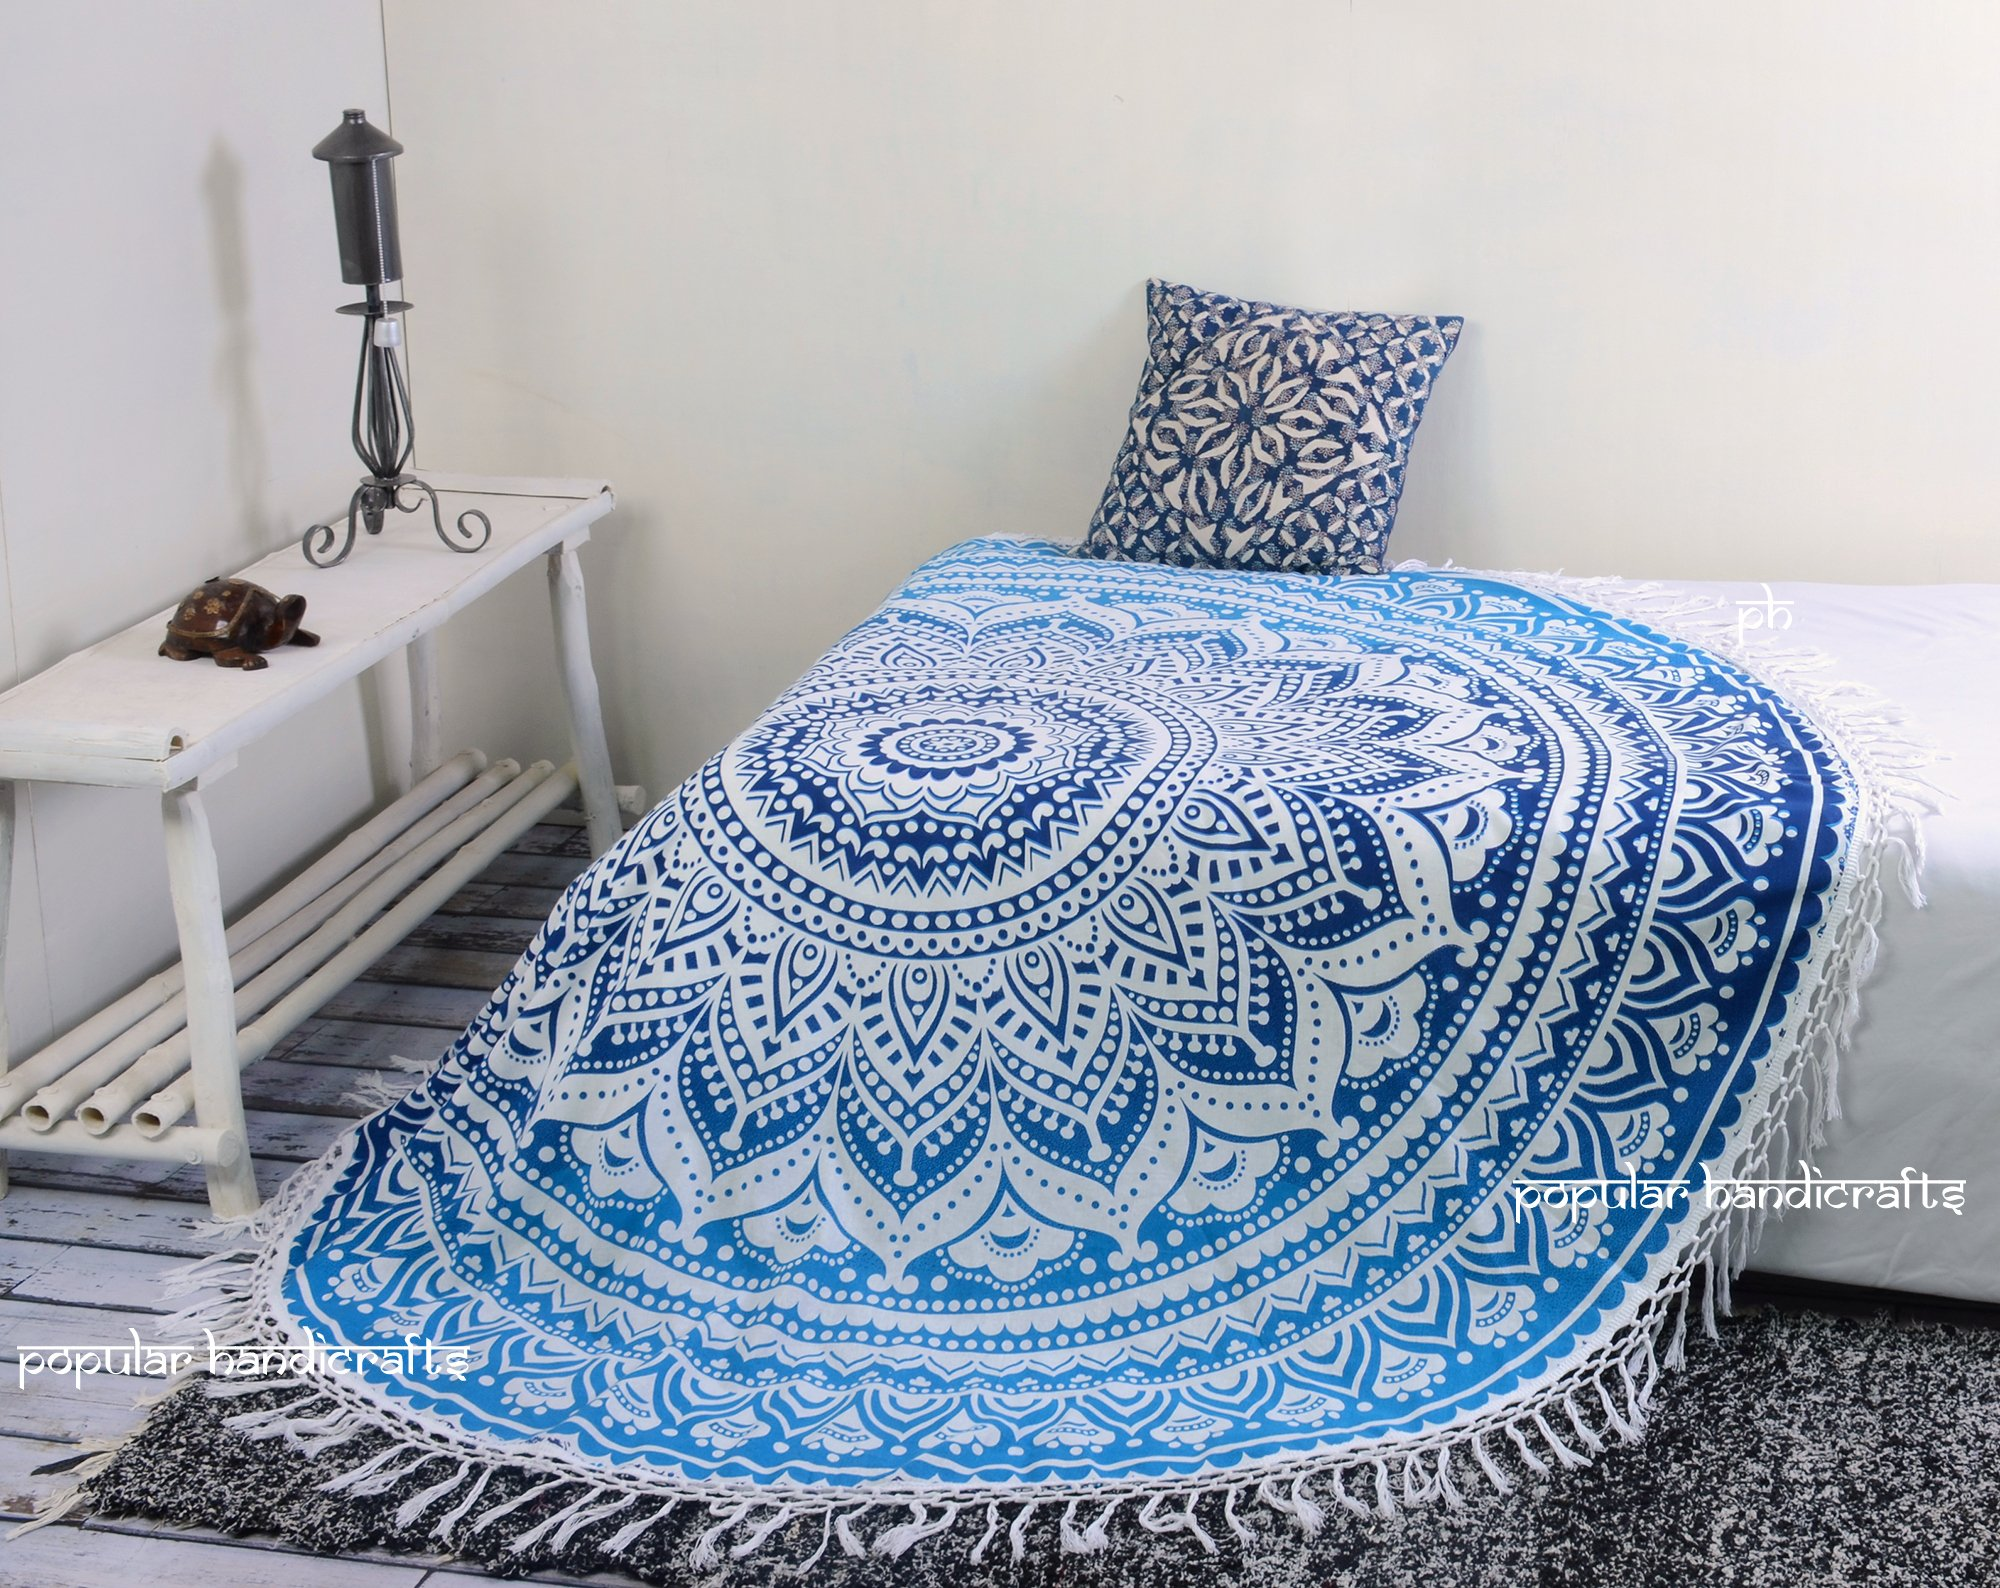 Popular Handicrafts Kp758 Tapestry Round ombre Mandala Roundie Beach Throw Indian Hippie Tapestry Wall Hanging Décor urban tapestry round table cloth 70'' with cotton tassel (Blue)